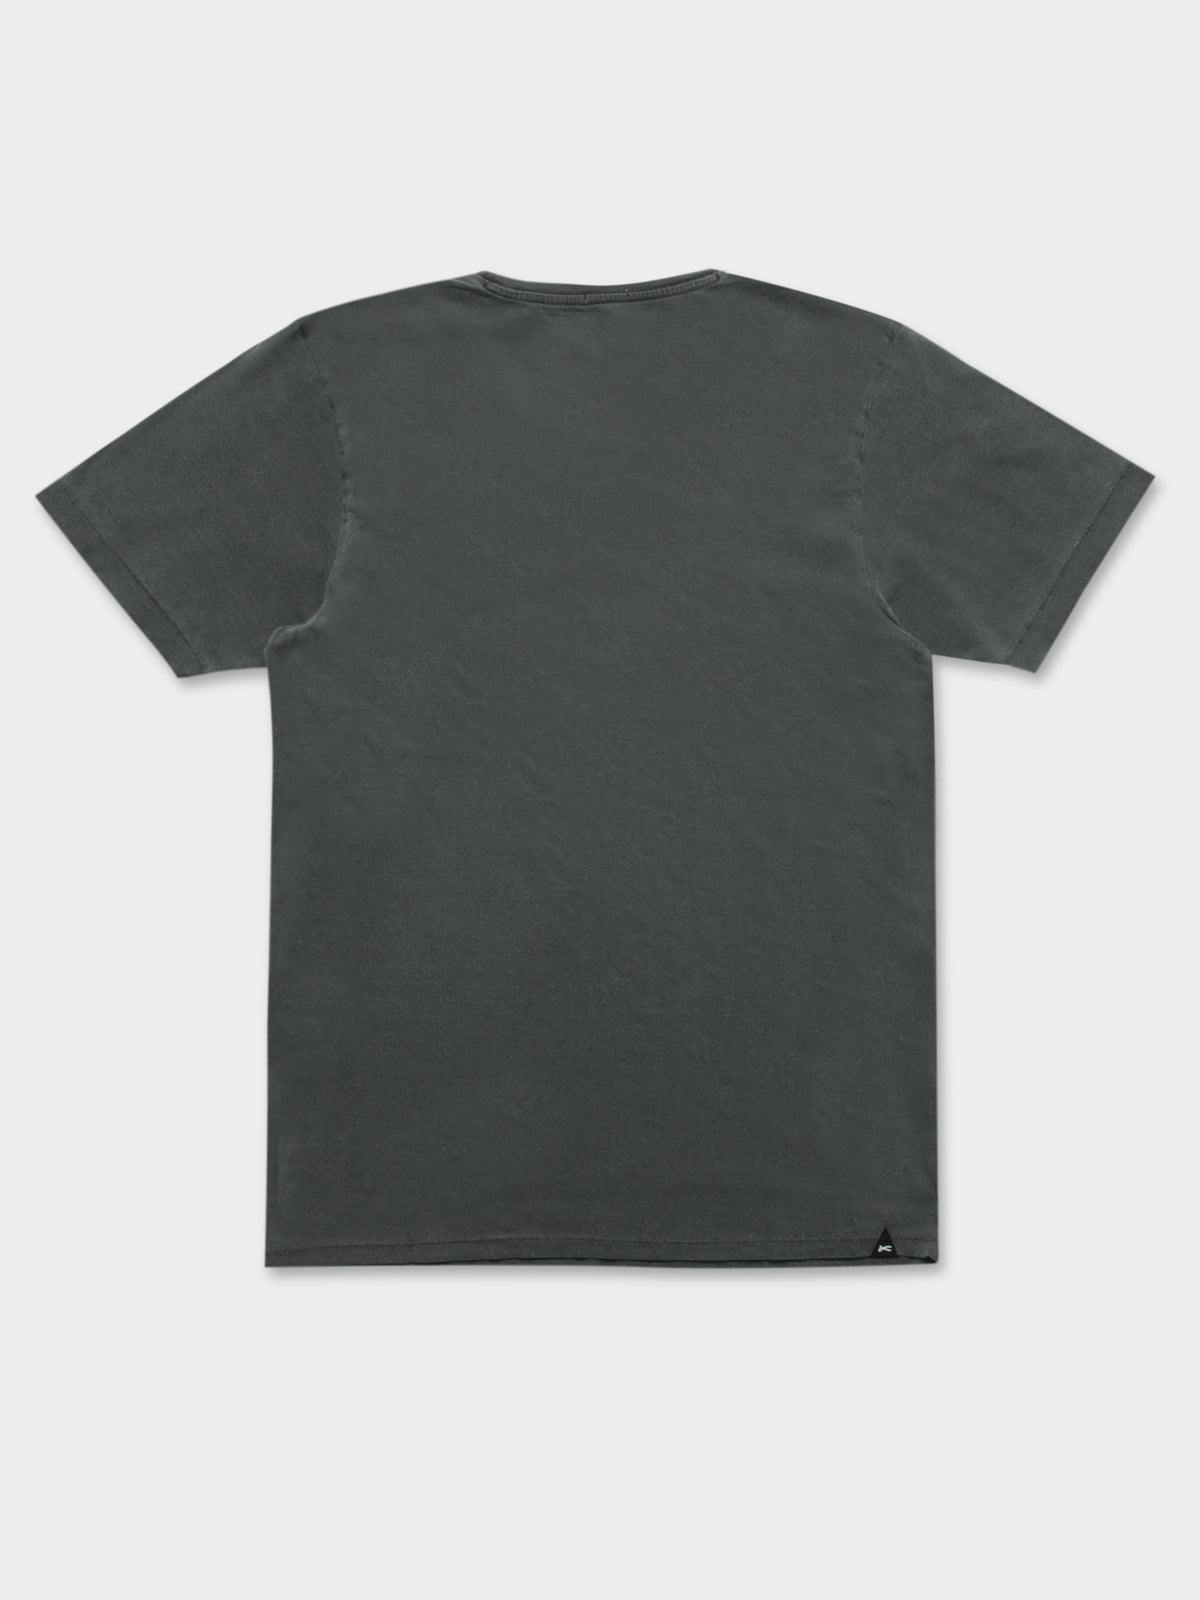 Tubular Crew T-Shirt in Gun Metal Grey